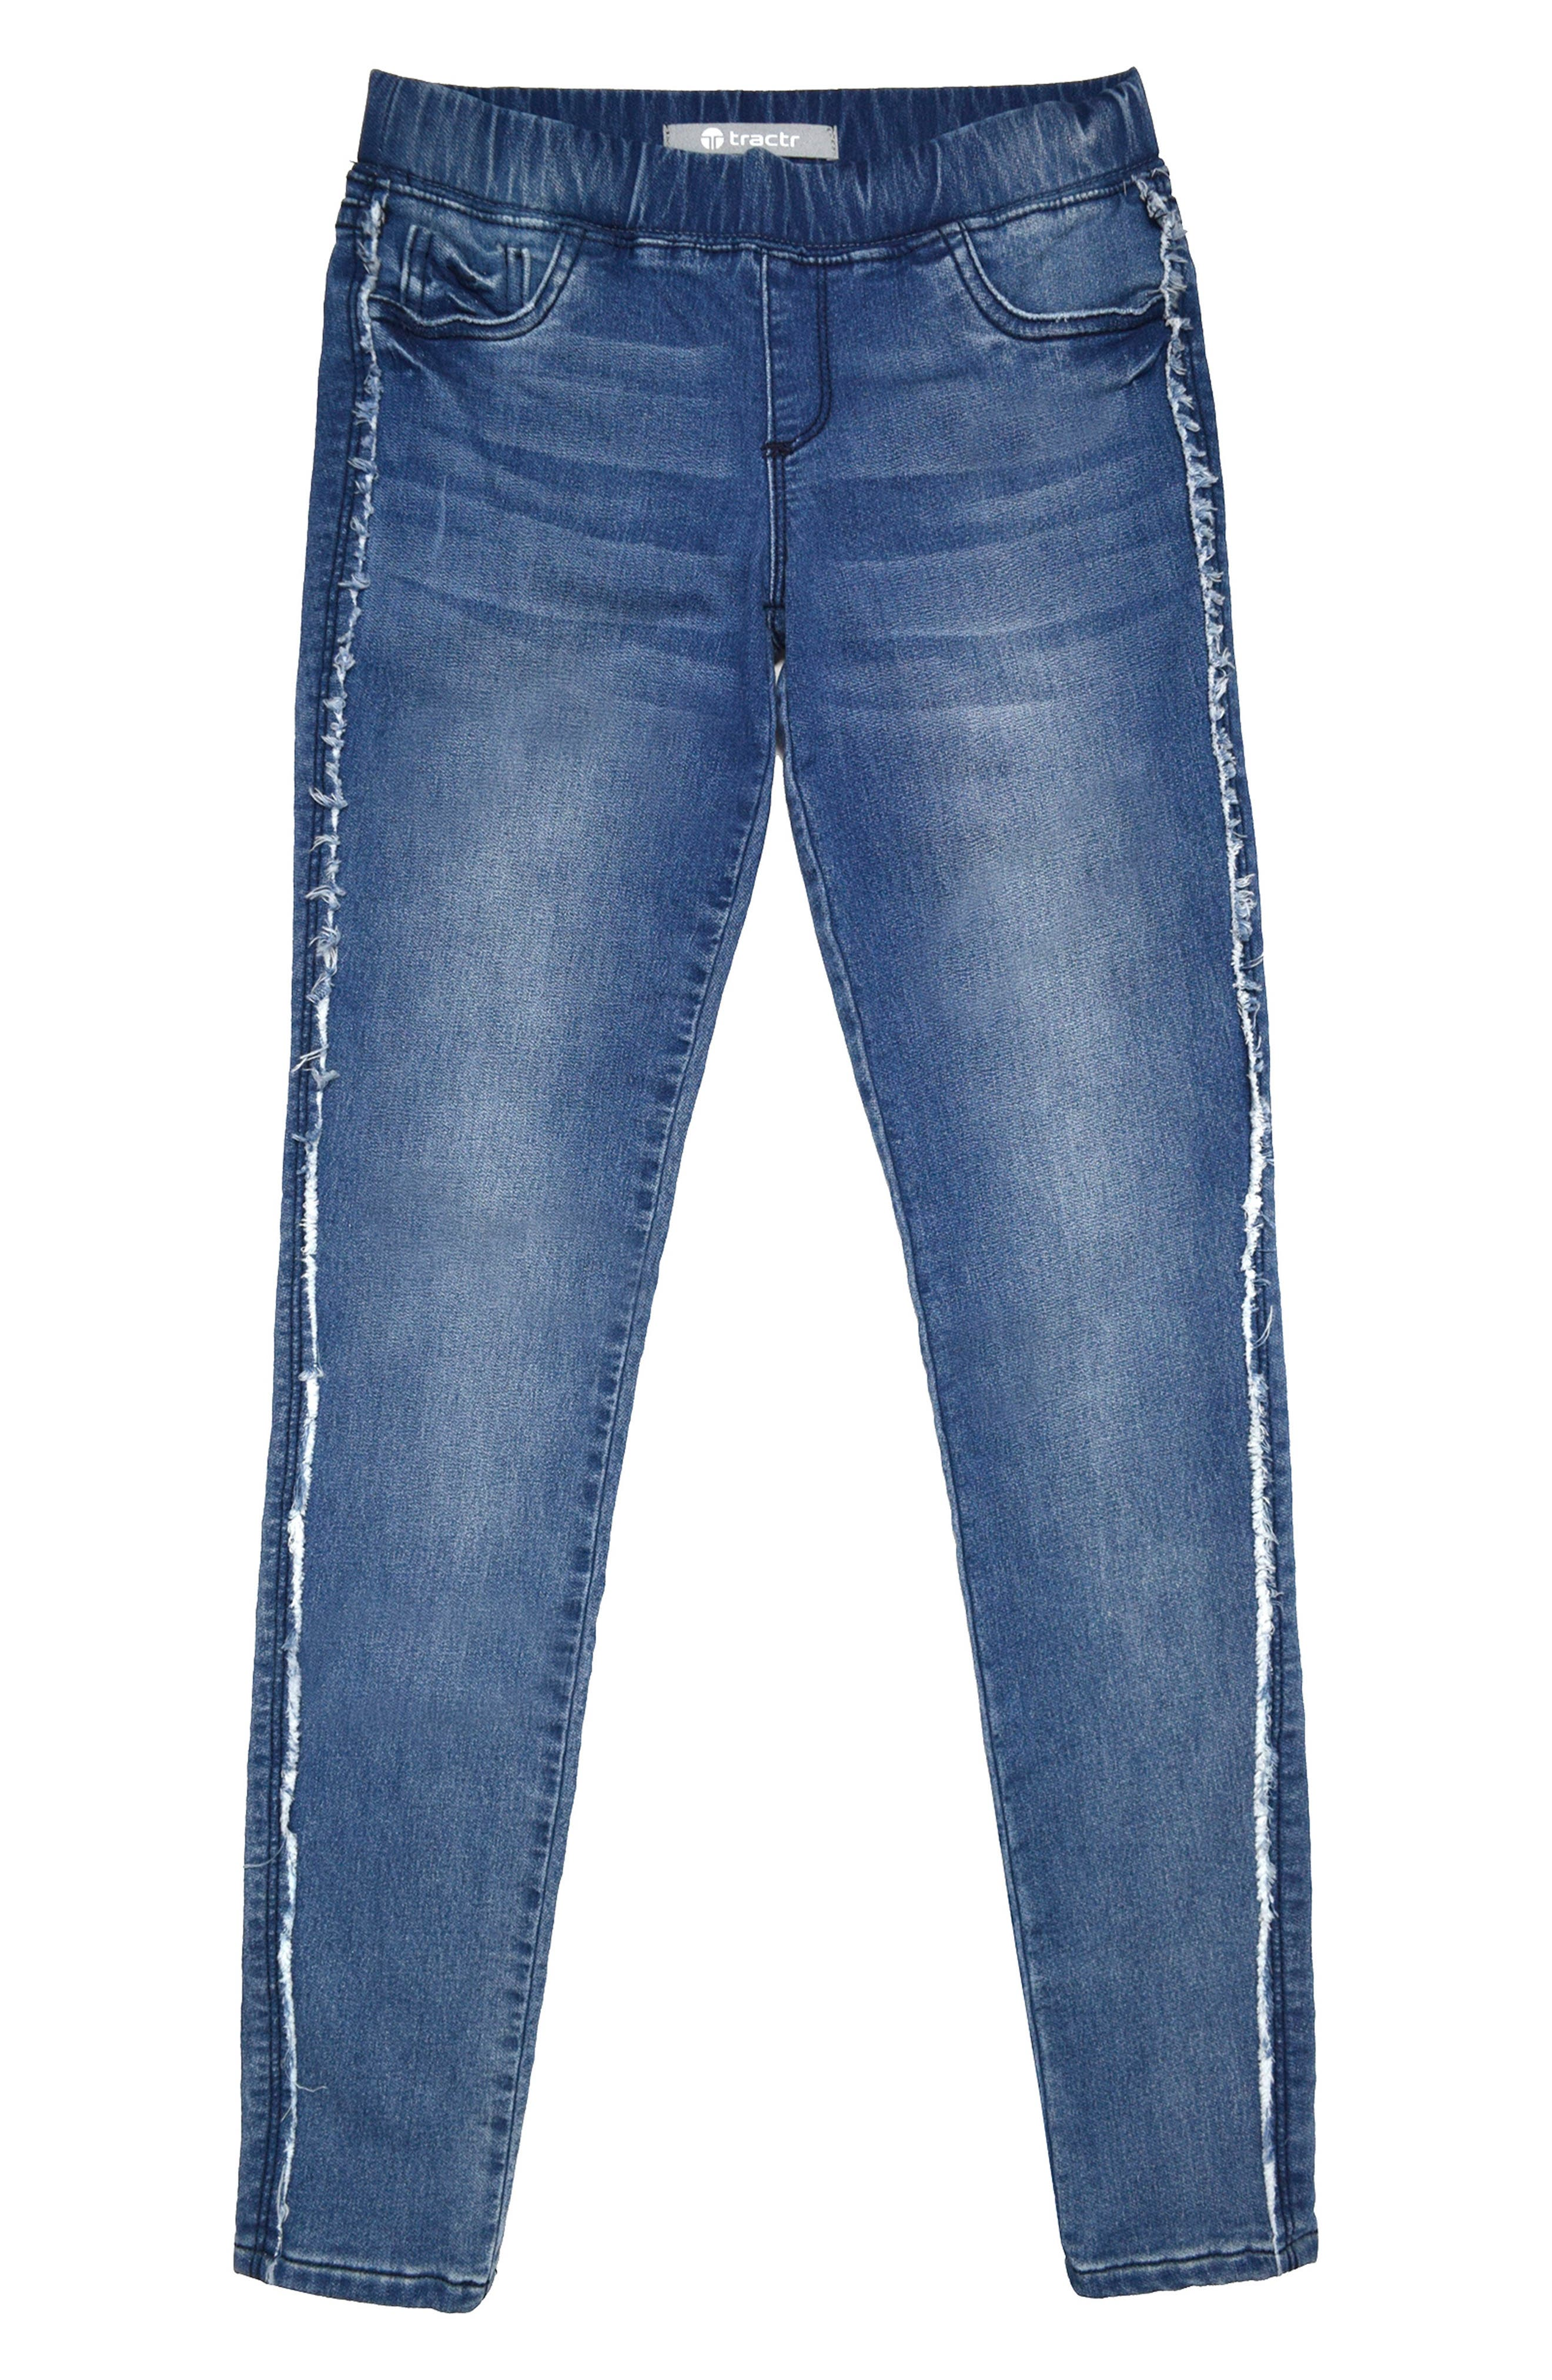 Pull On Skinny Jeans,                         Main,                         color, Indigo